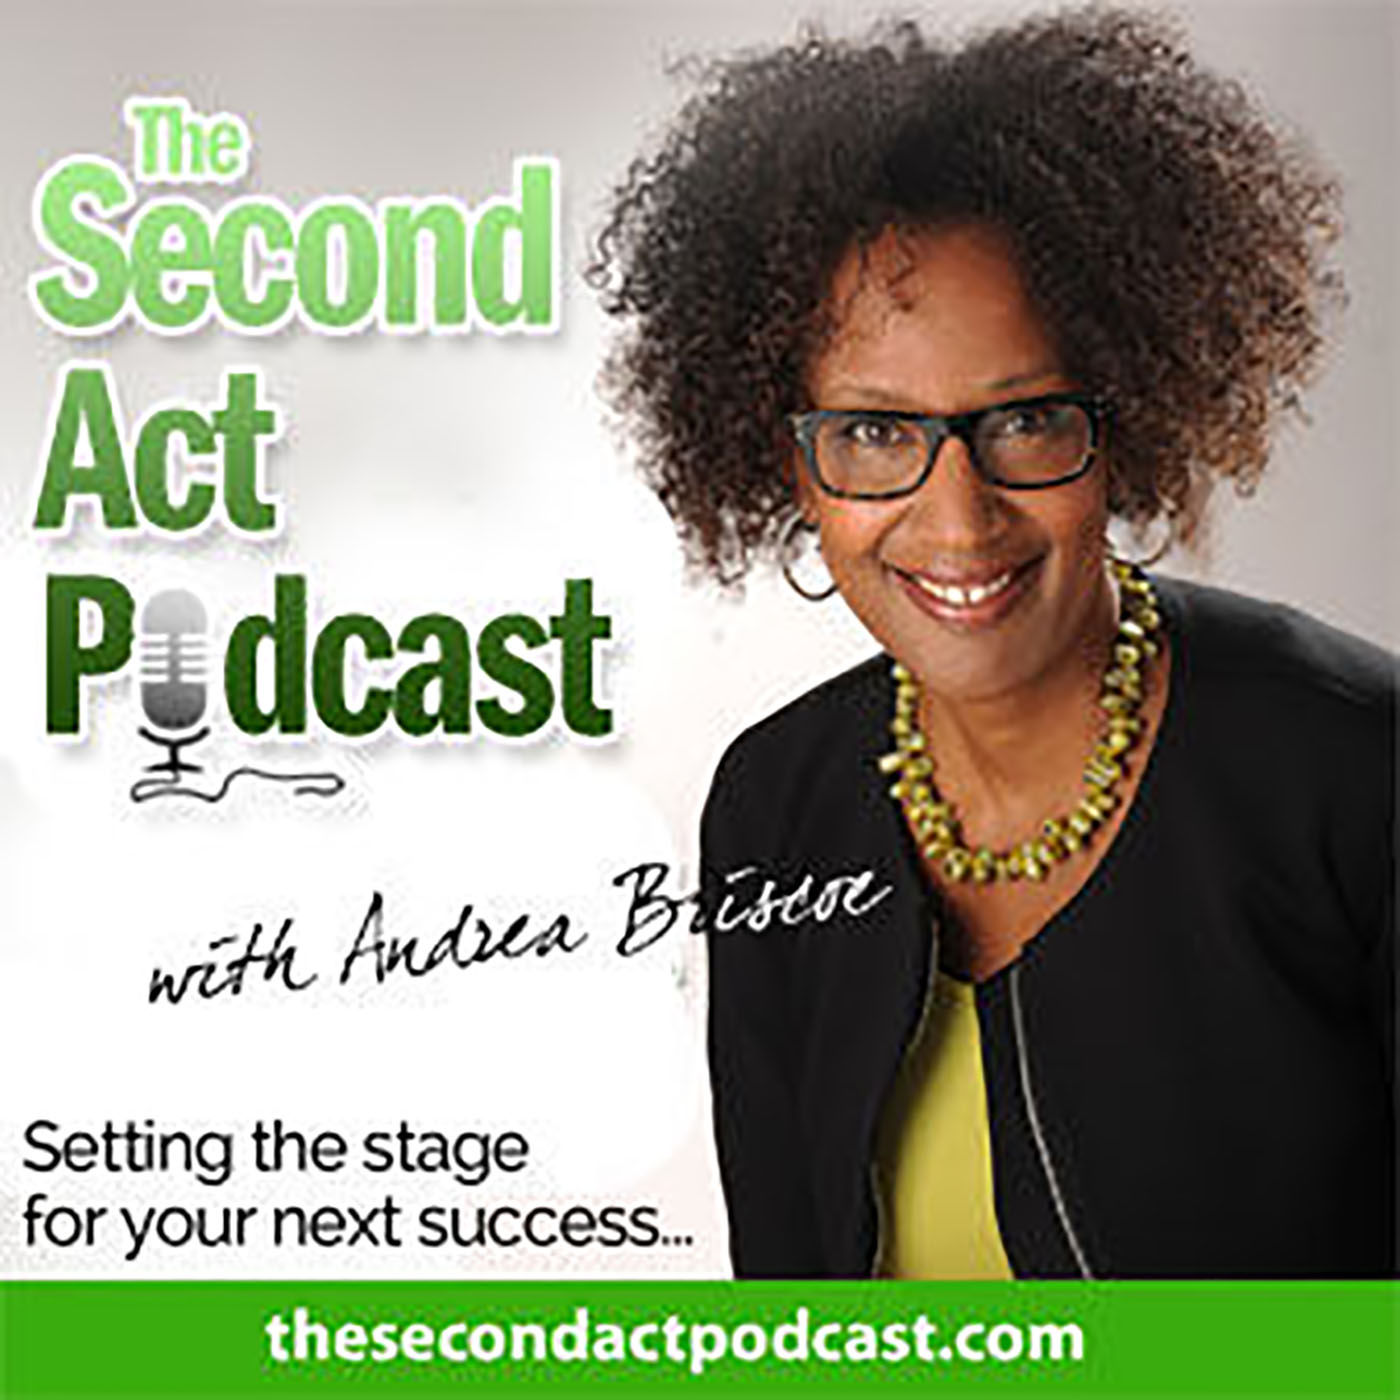 The Second Act Podcast Episode 1 - The Overview